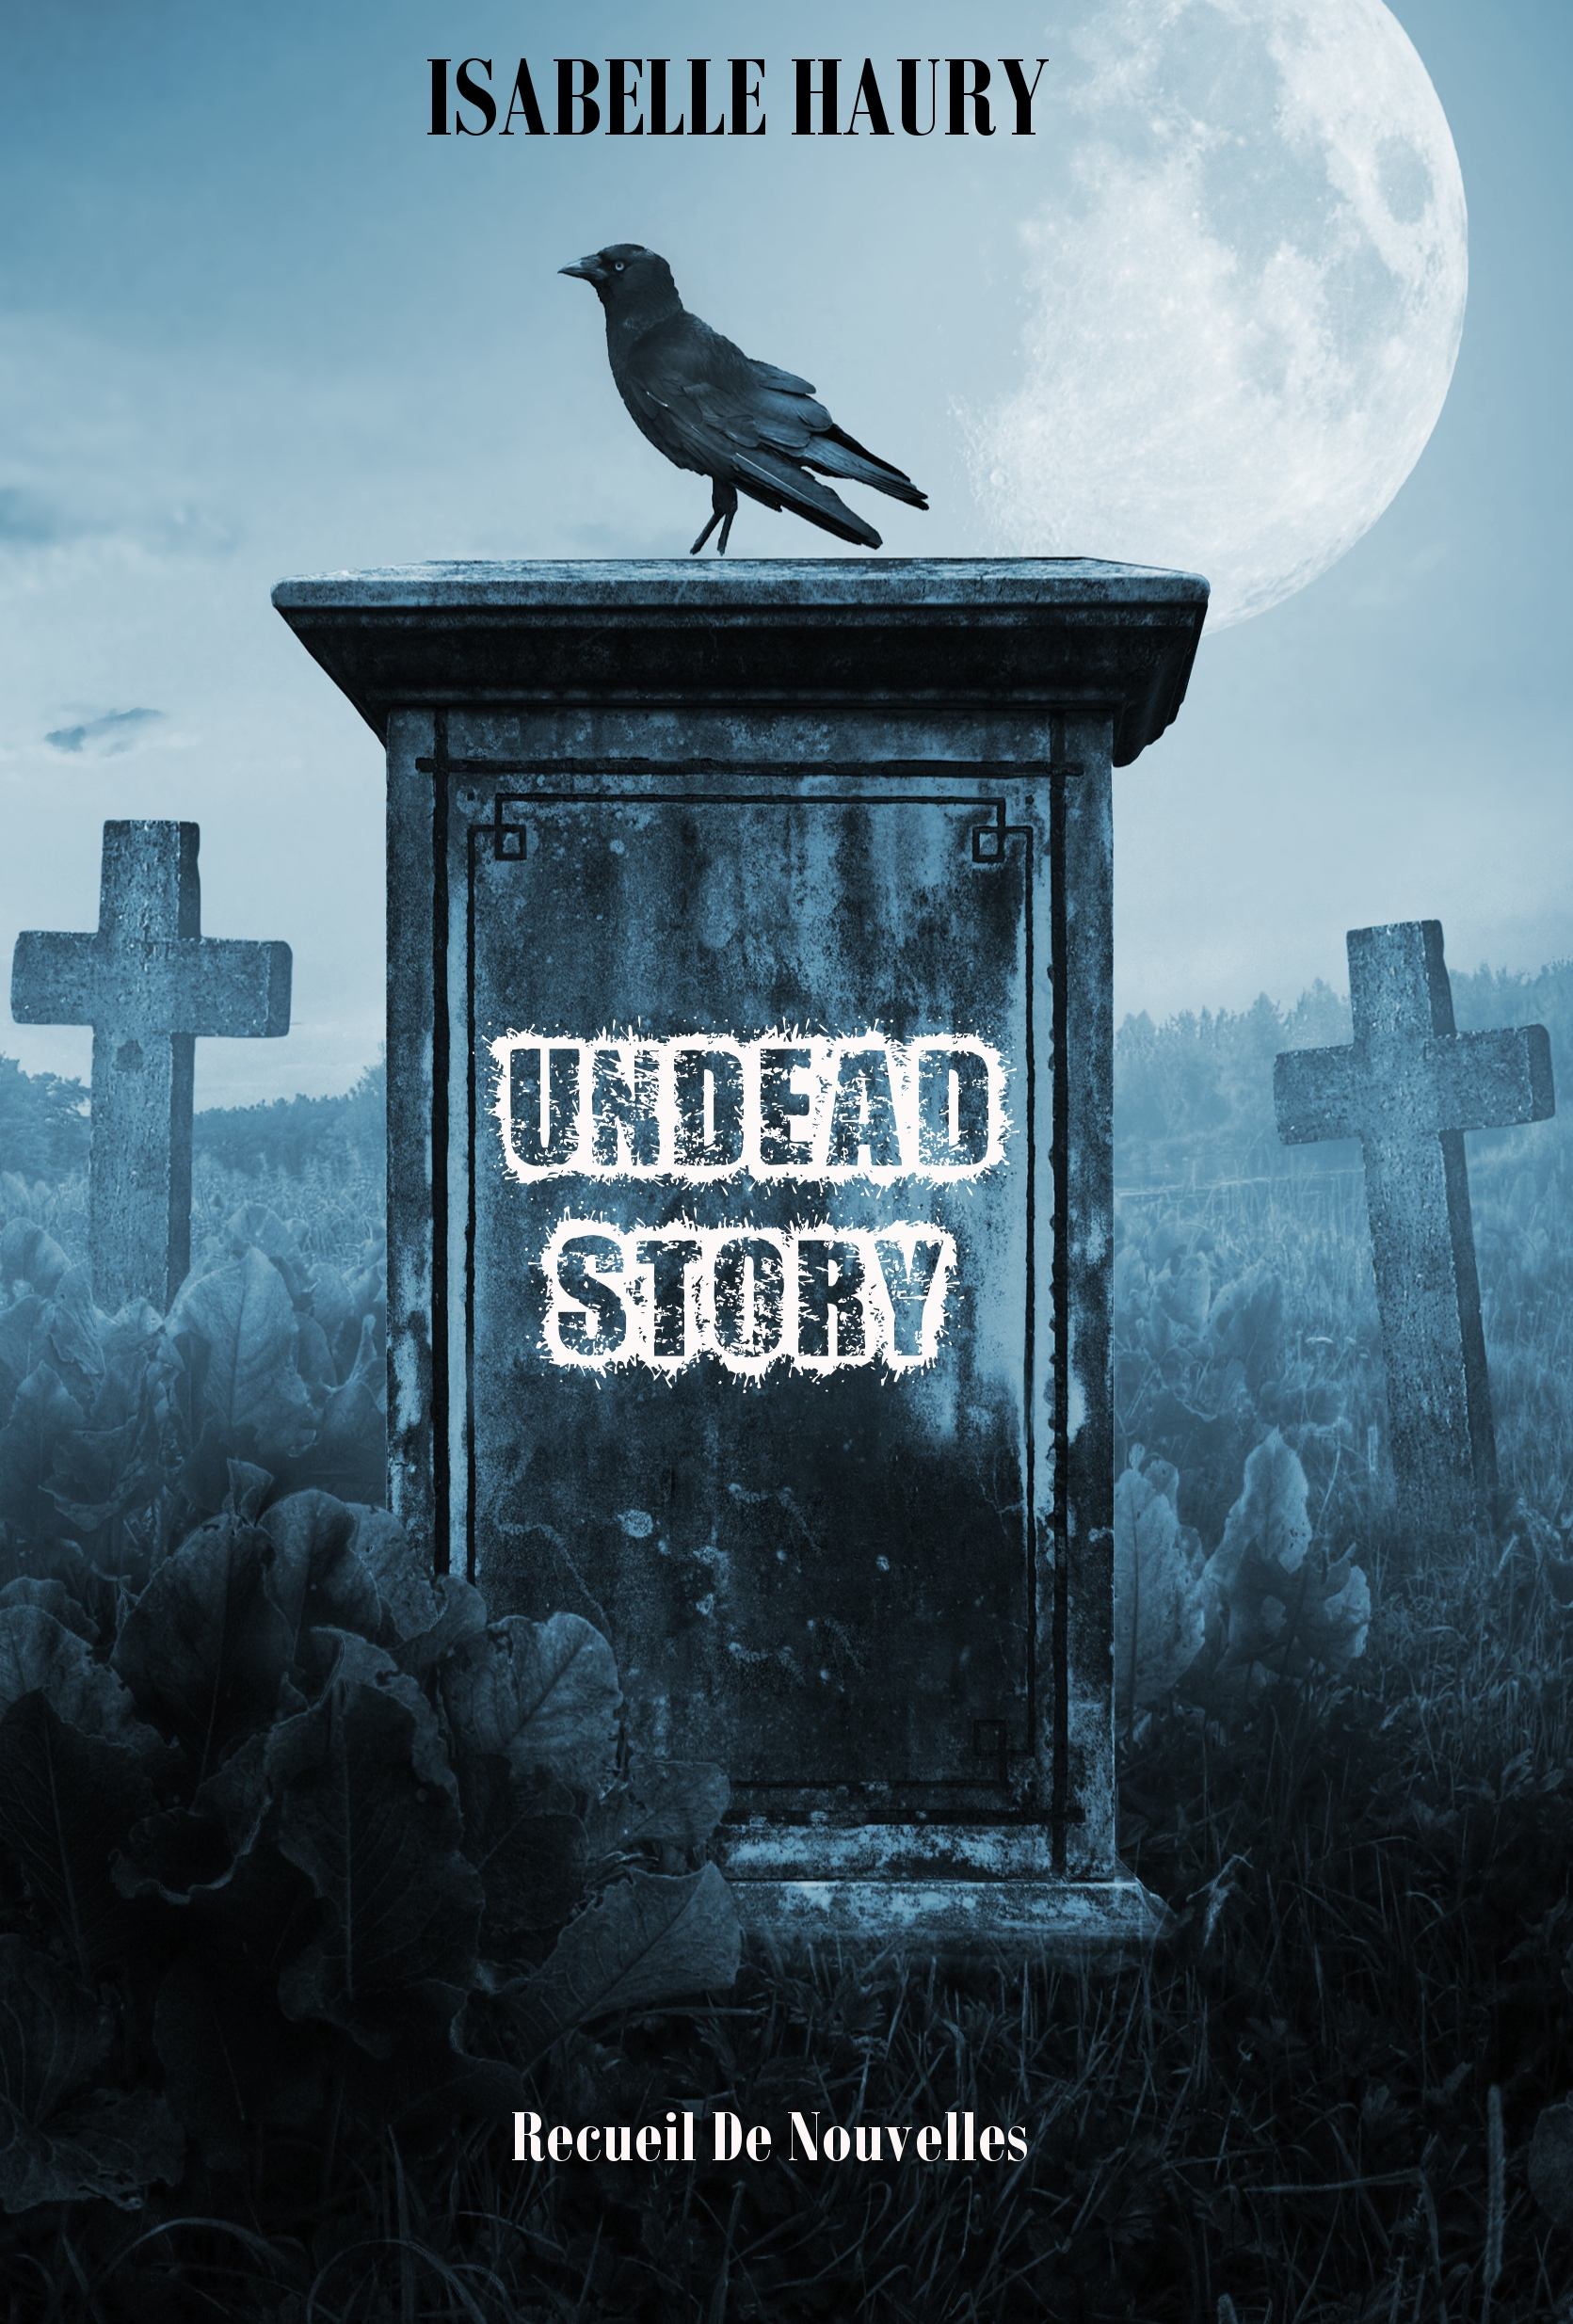 undead-story-isabelle-haury